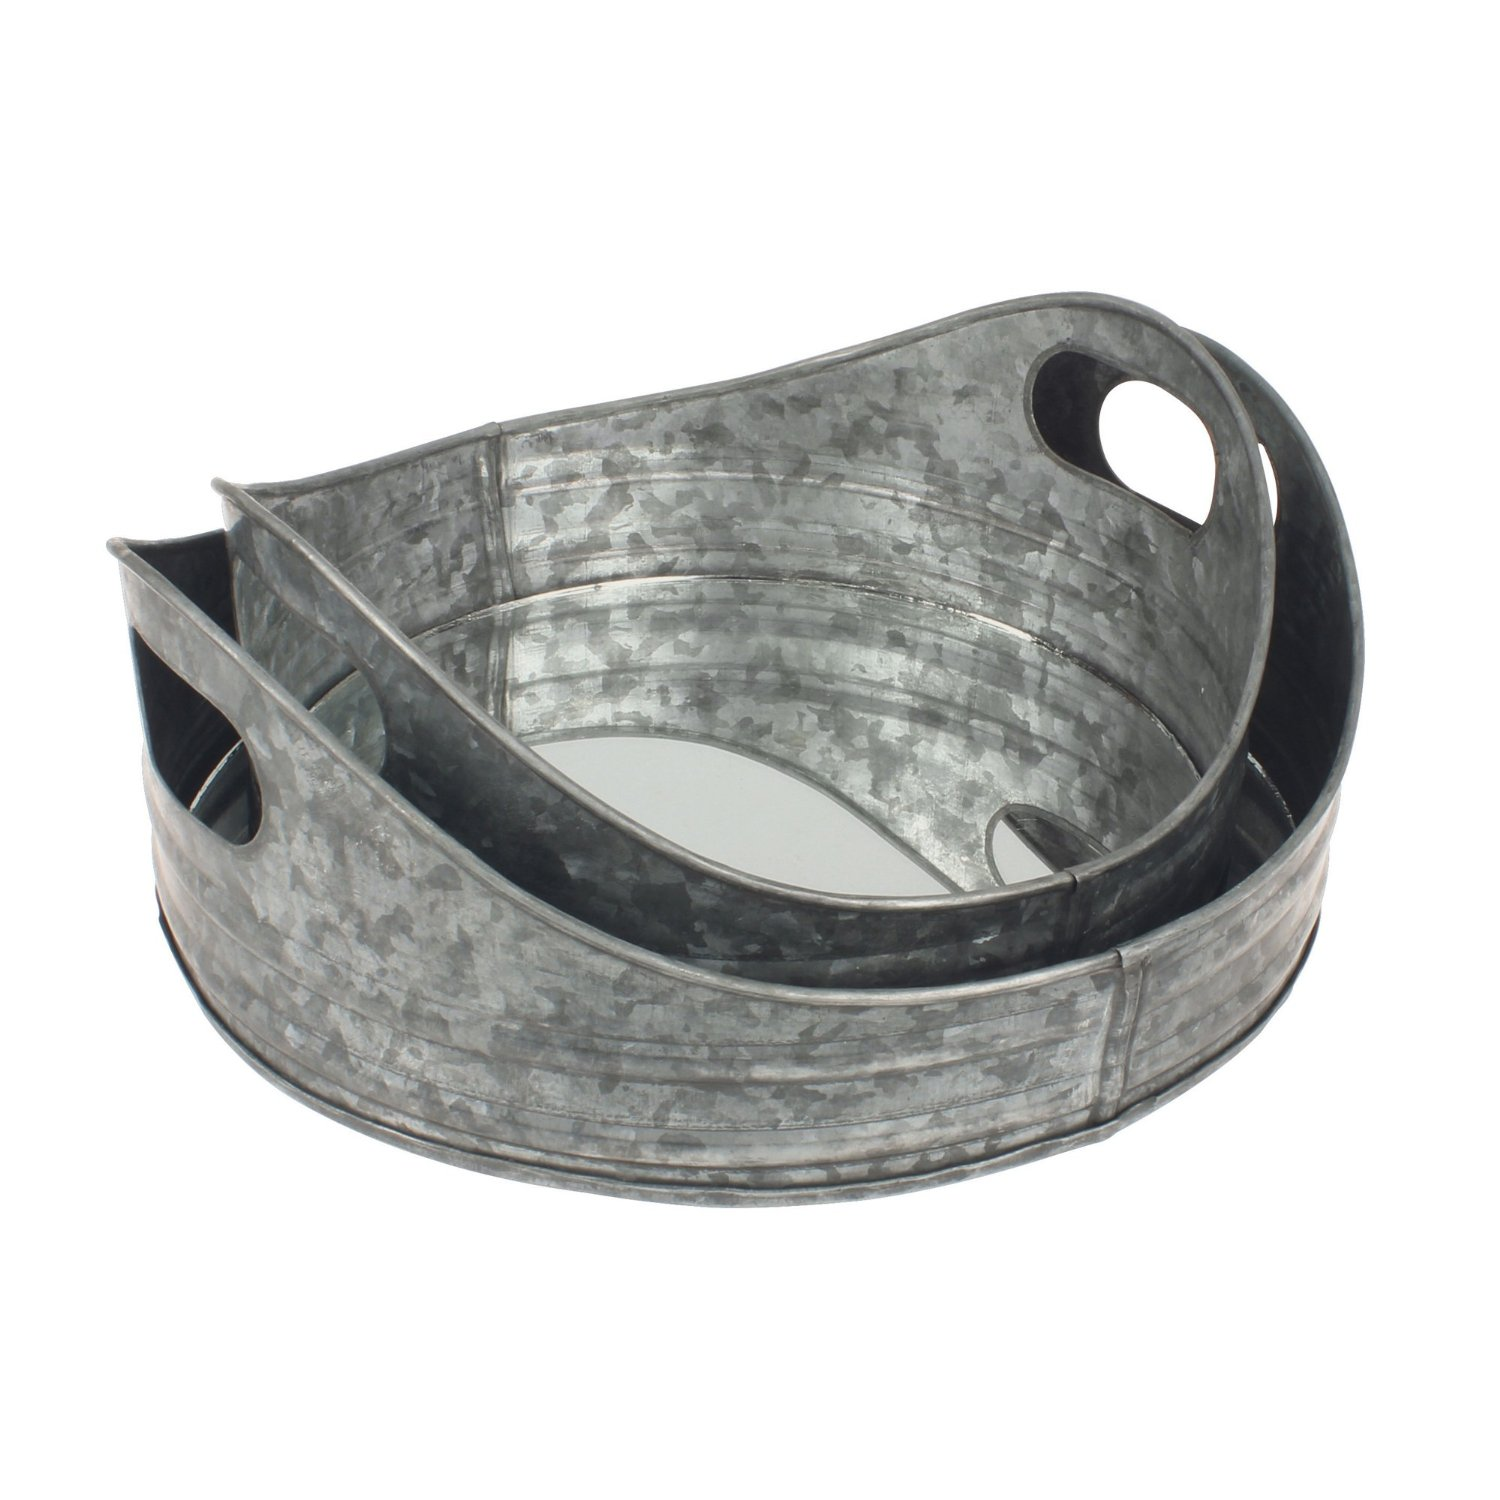 Buy Stonebriar Round Nesting Galvanized Metal Serving Tray Set With Handles Rustic Butler Trays For Serving Food And Drink A Unique Coffee Table Centerpiece Or Desk Organizer For Documents In Cheap Price